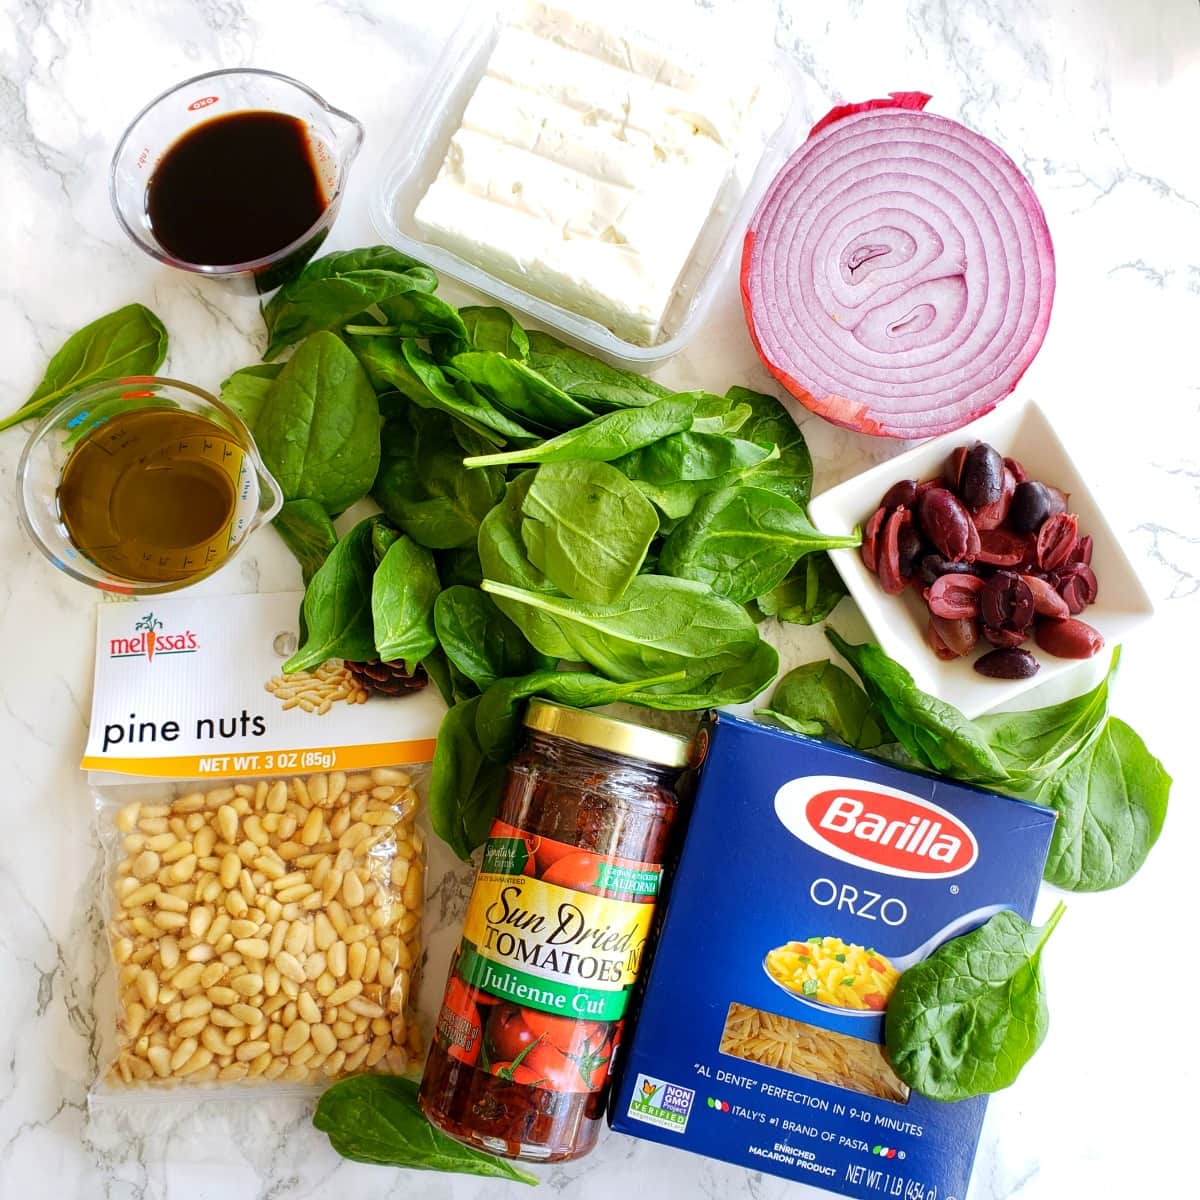 Ingredients for Spinach Orzo Salad on a white marble counter